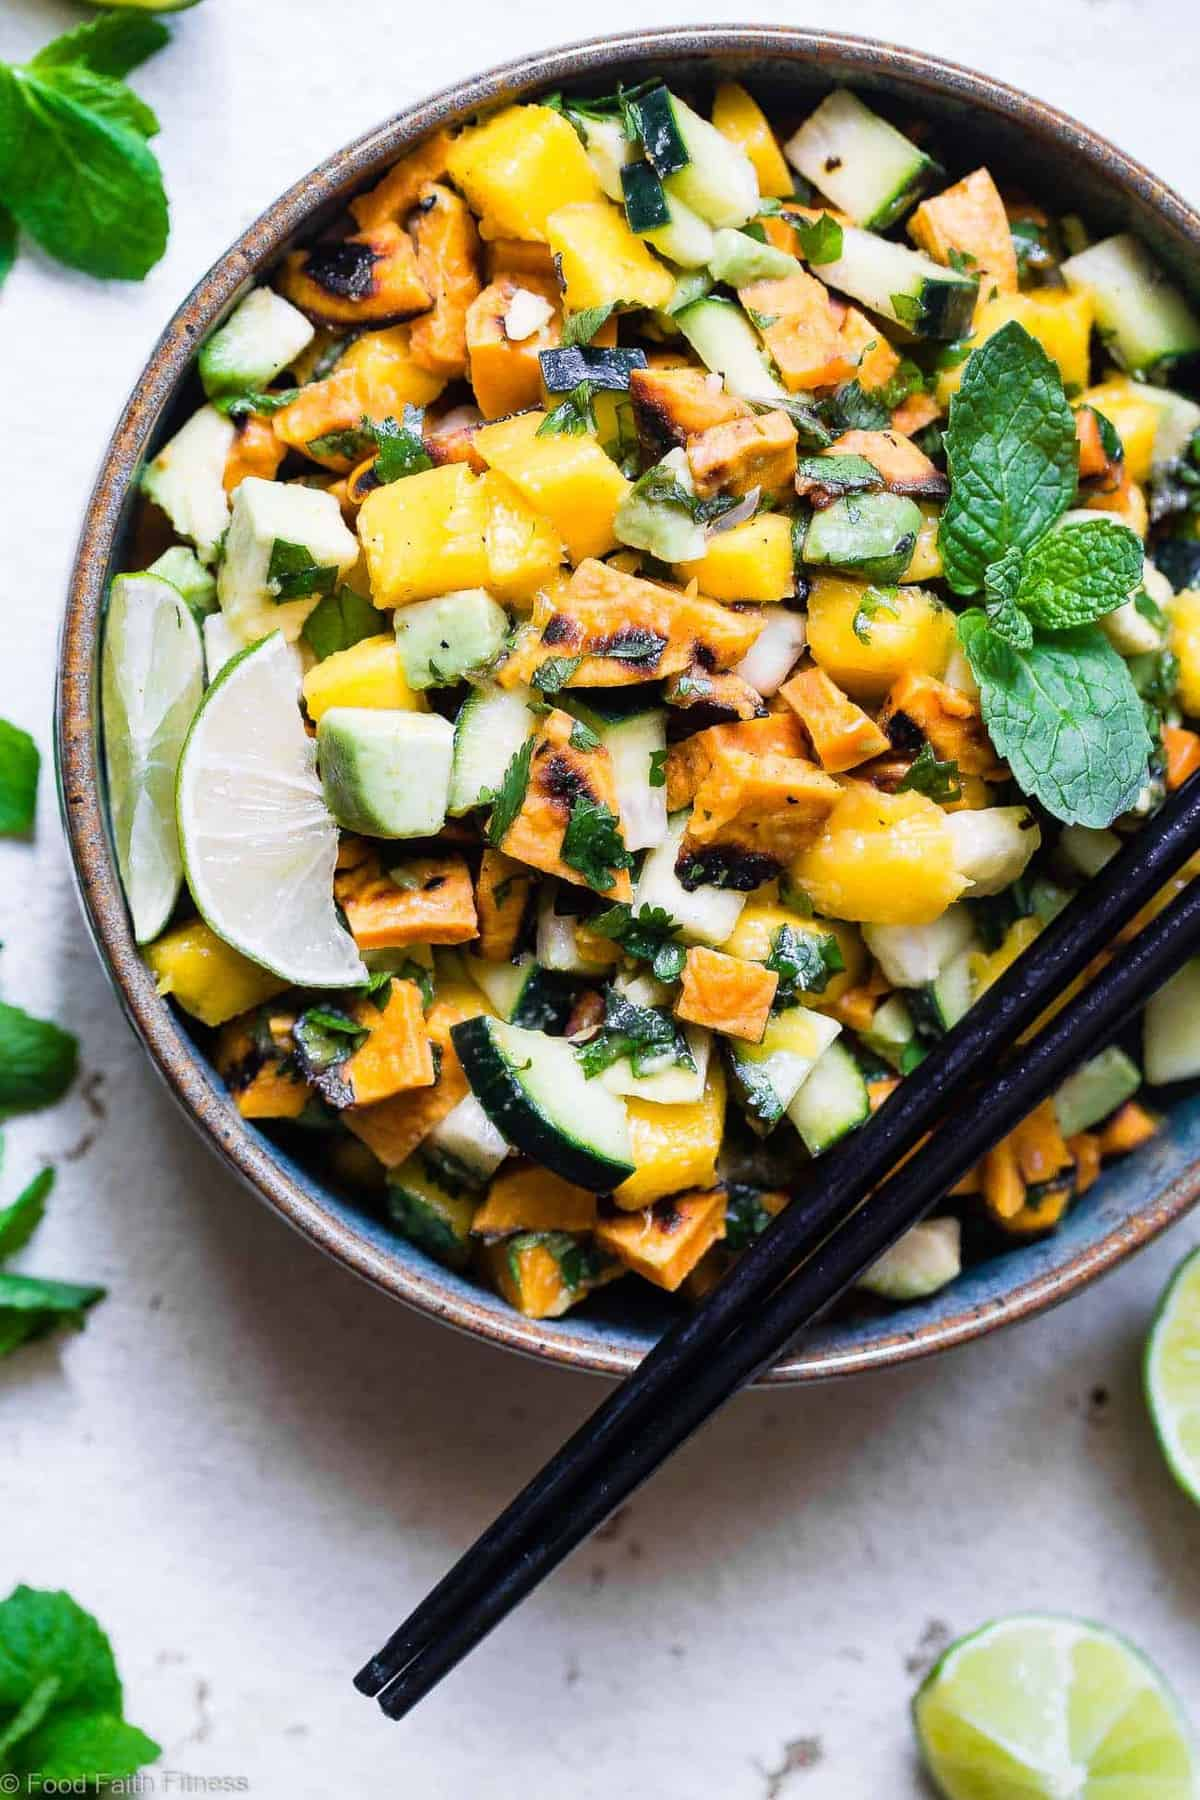 Thai Mango Avocado Salad with Grilled Sweet Potatoes - Loaded with sweet mango, tangy lime juice and creamy avocado, this is an EASY, healthy summer side that is sure to please! Gluten free, vegan, paleo and whole30 friendly too! | #Foodfaithfitness | #Whole30 #Glutenfree #Vegan #Paleo #Dairyfree